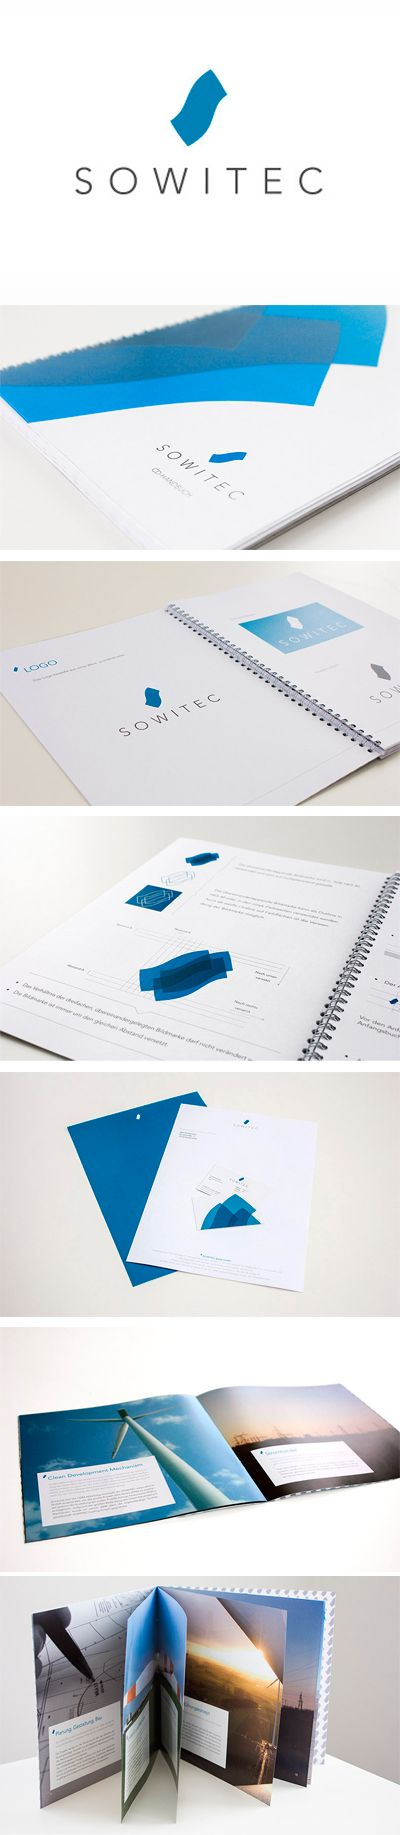 #branding and #logo design for SOWITEC group: one of the leading wind power developers in Latin America and Russia.